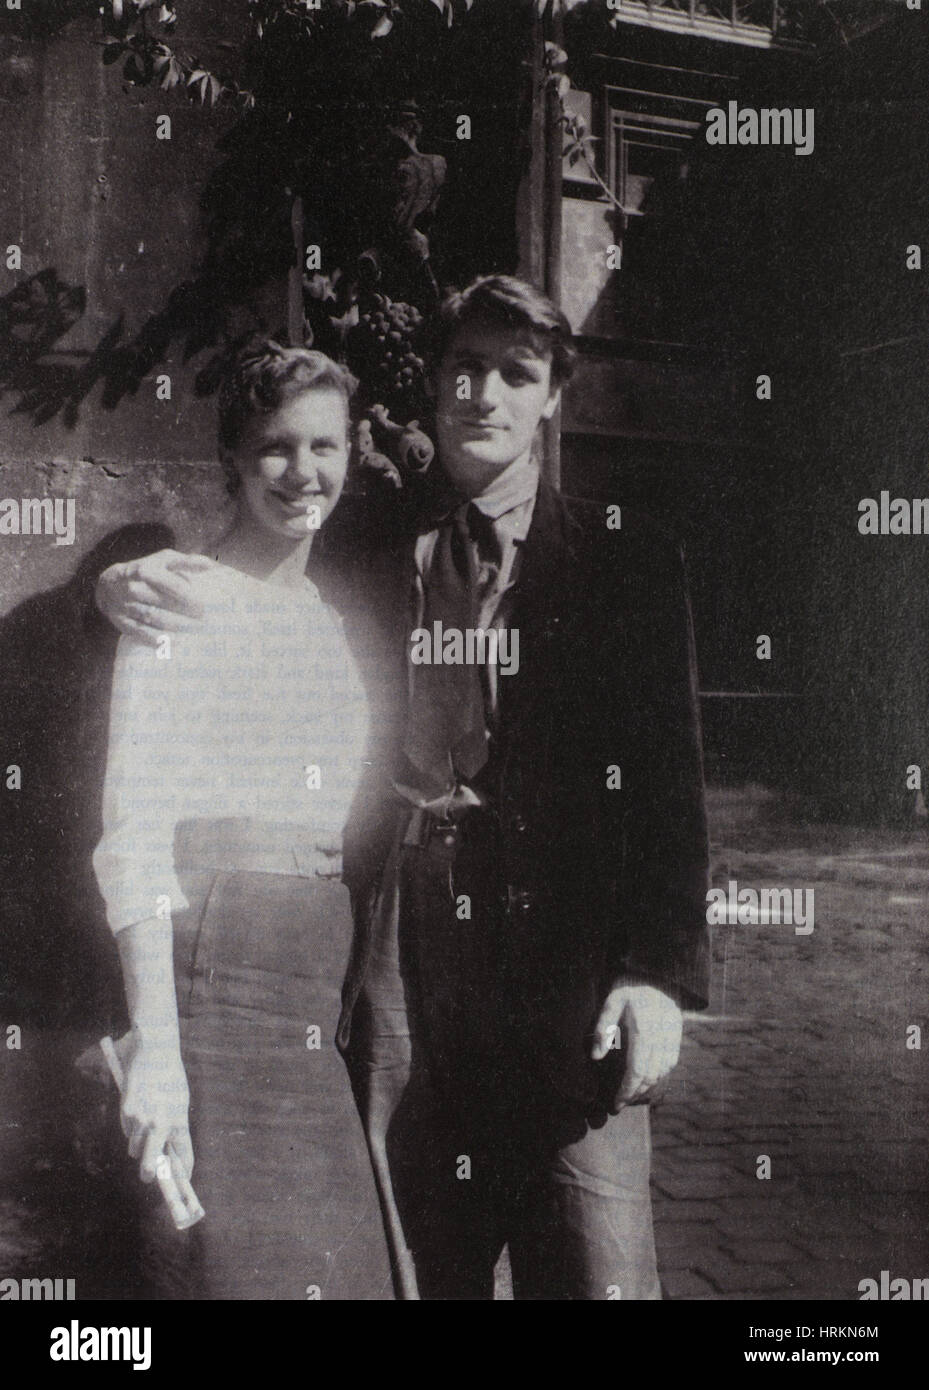 Sylvia Plath and Ted Hughes - Stock Image